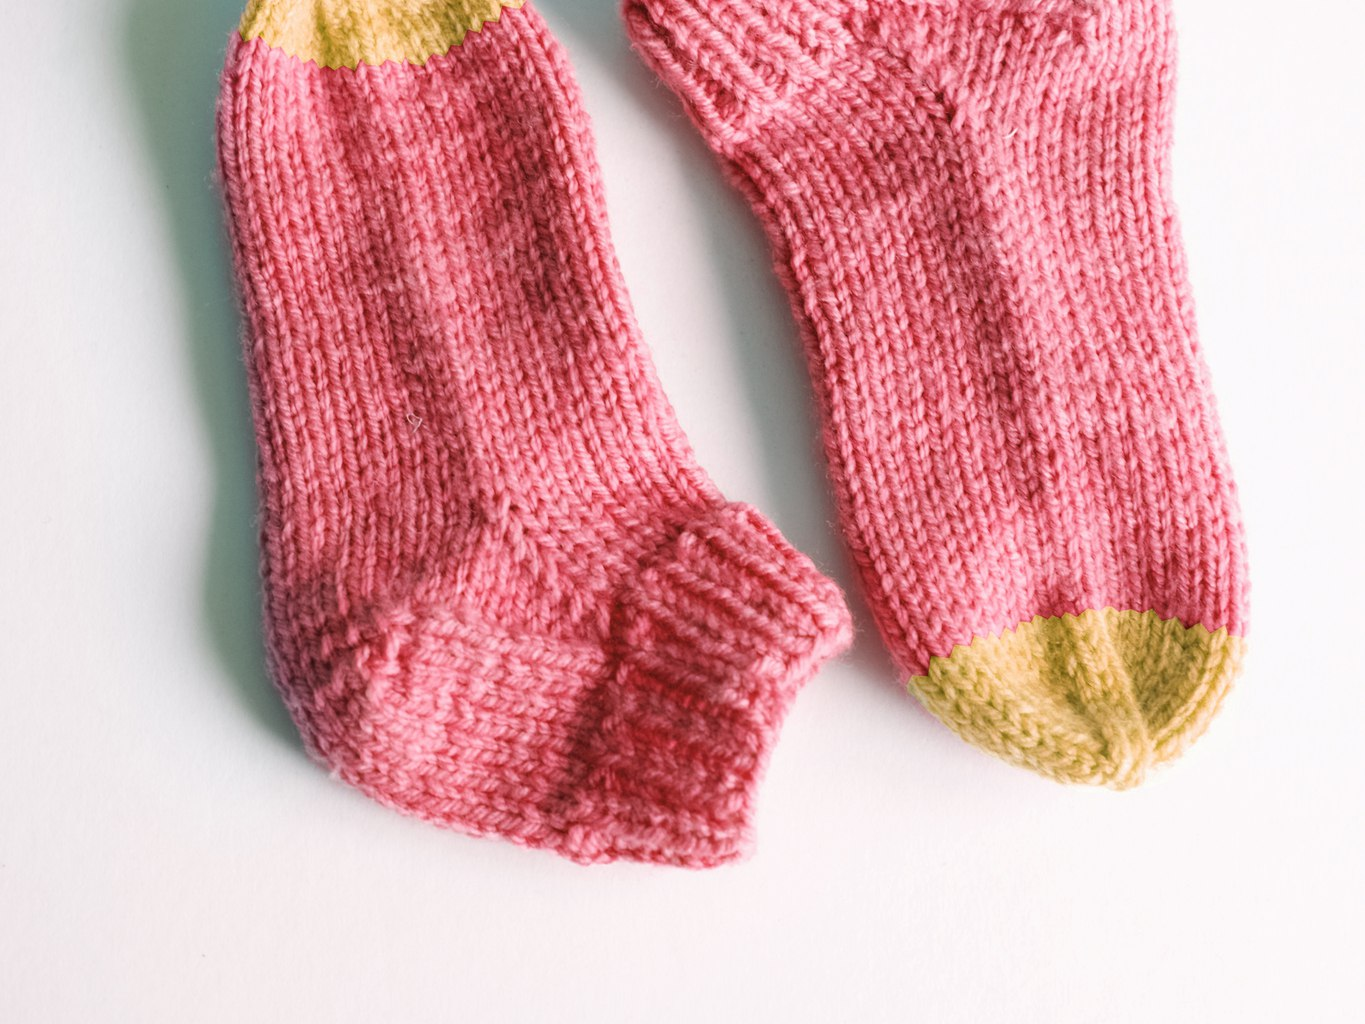 Knitting basic socks part 2 friendly nettle once you have learned knitting basic socks you can move on to knitting socks with pretty colourful patterns like these here although they all been added bankloansurffo Gallery